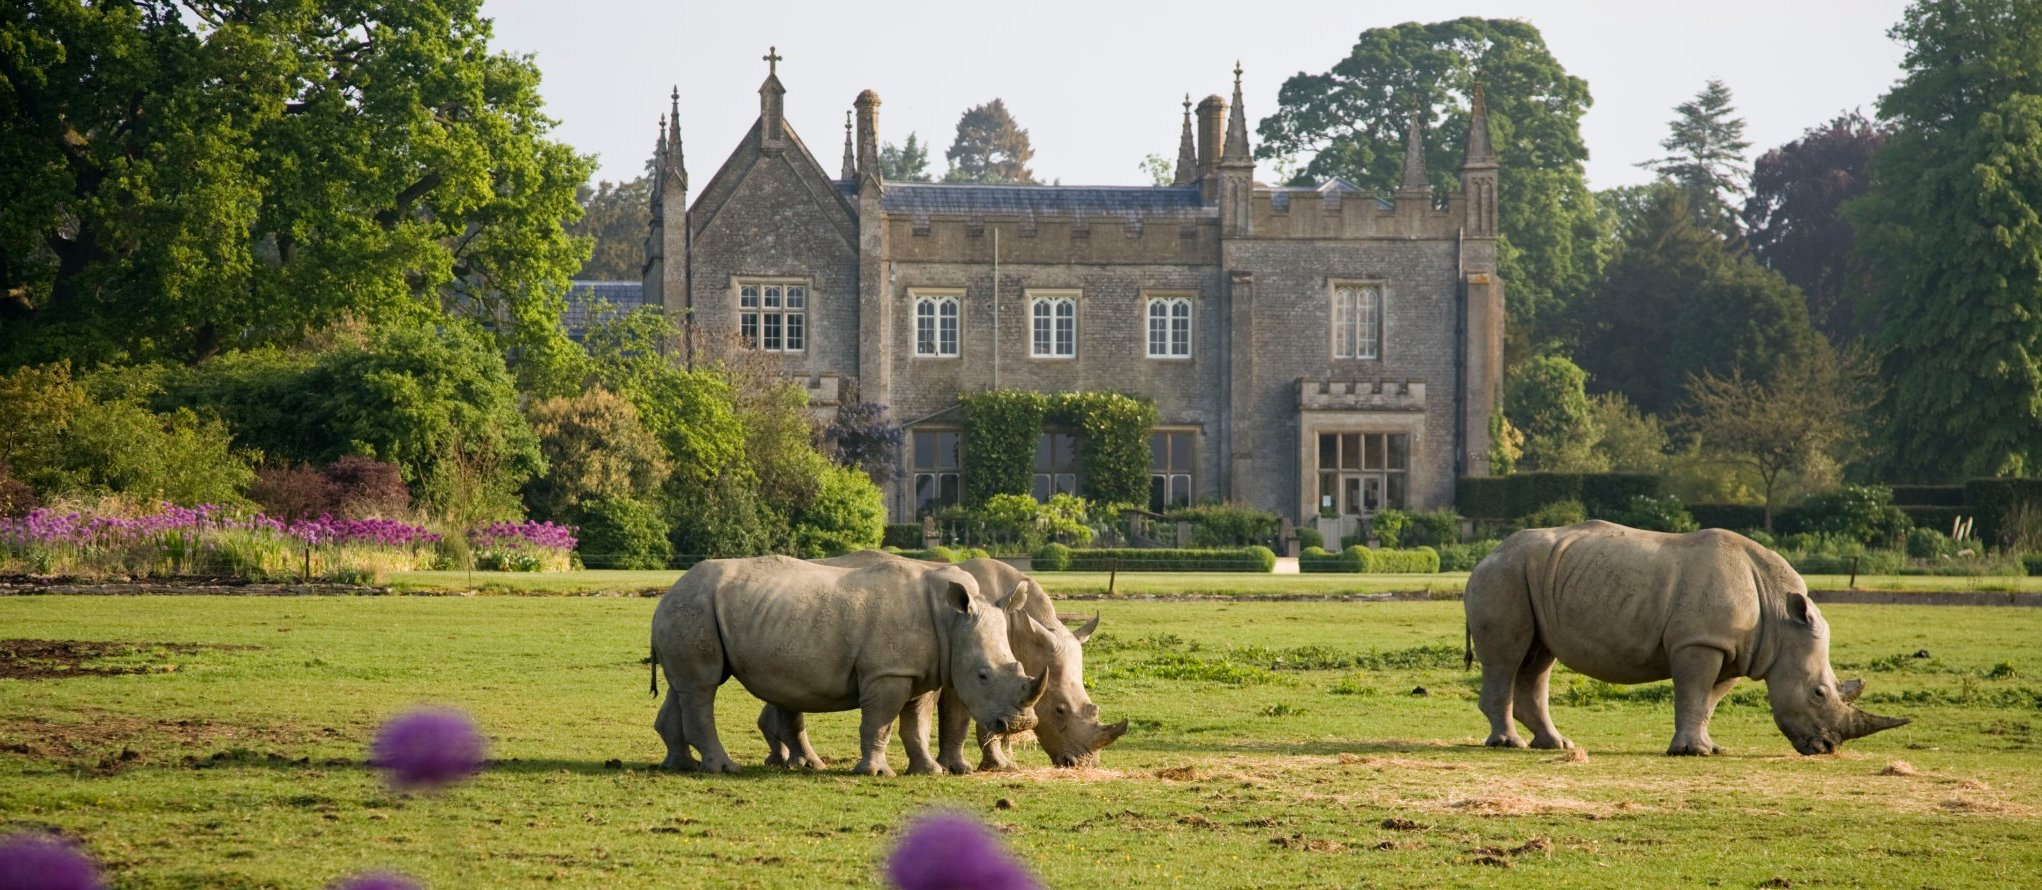 Cotswold Wildlife Park & Gardens's main image